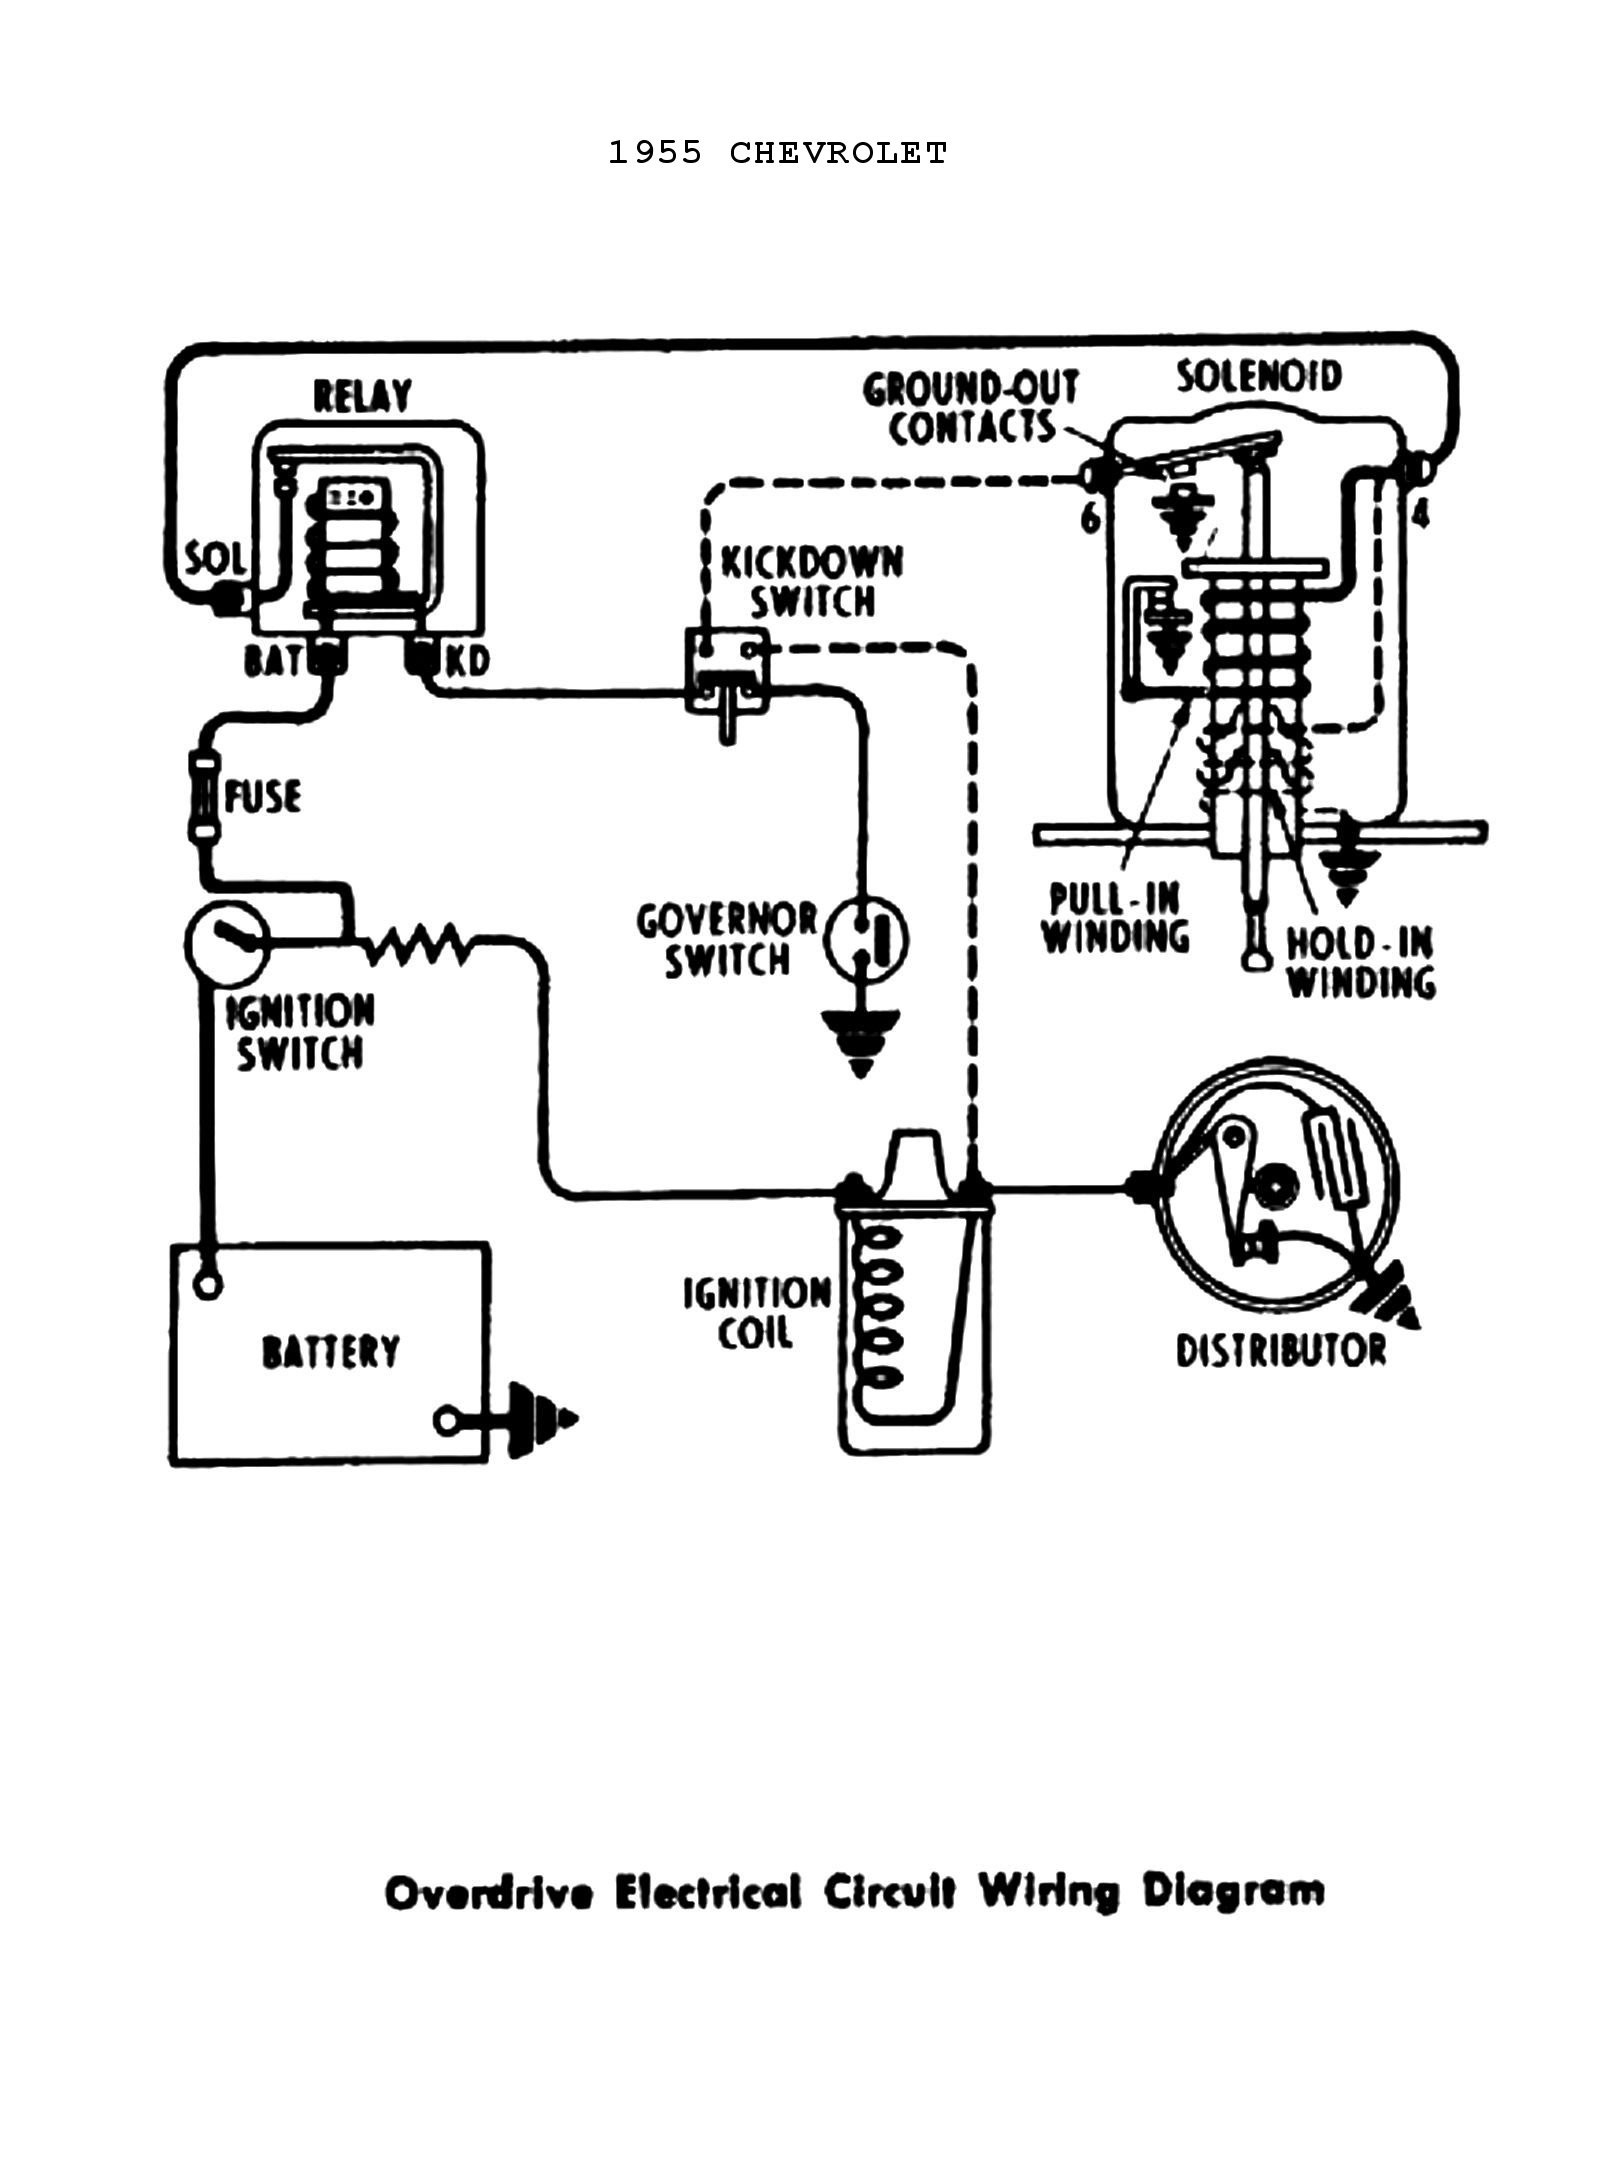 chevy steering column wiring diagram Collection-Chevy Tilt Steering Column Wiring Diagram Reference Chevy Wiring Diagrams 15-t